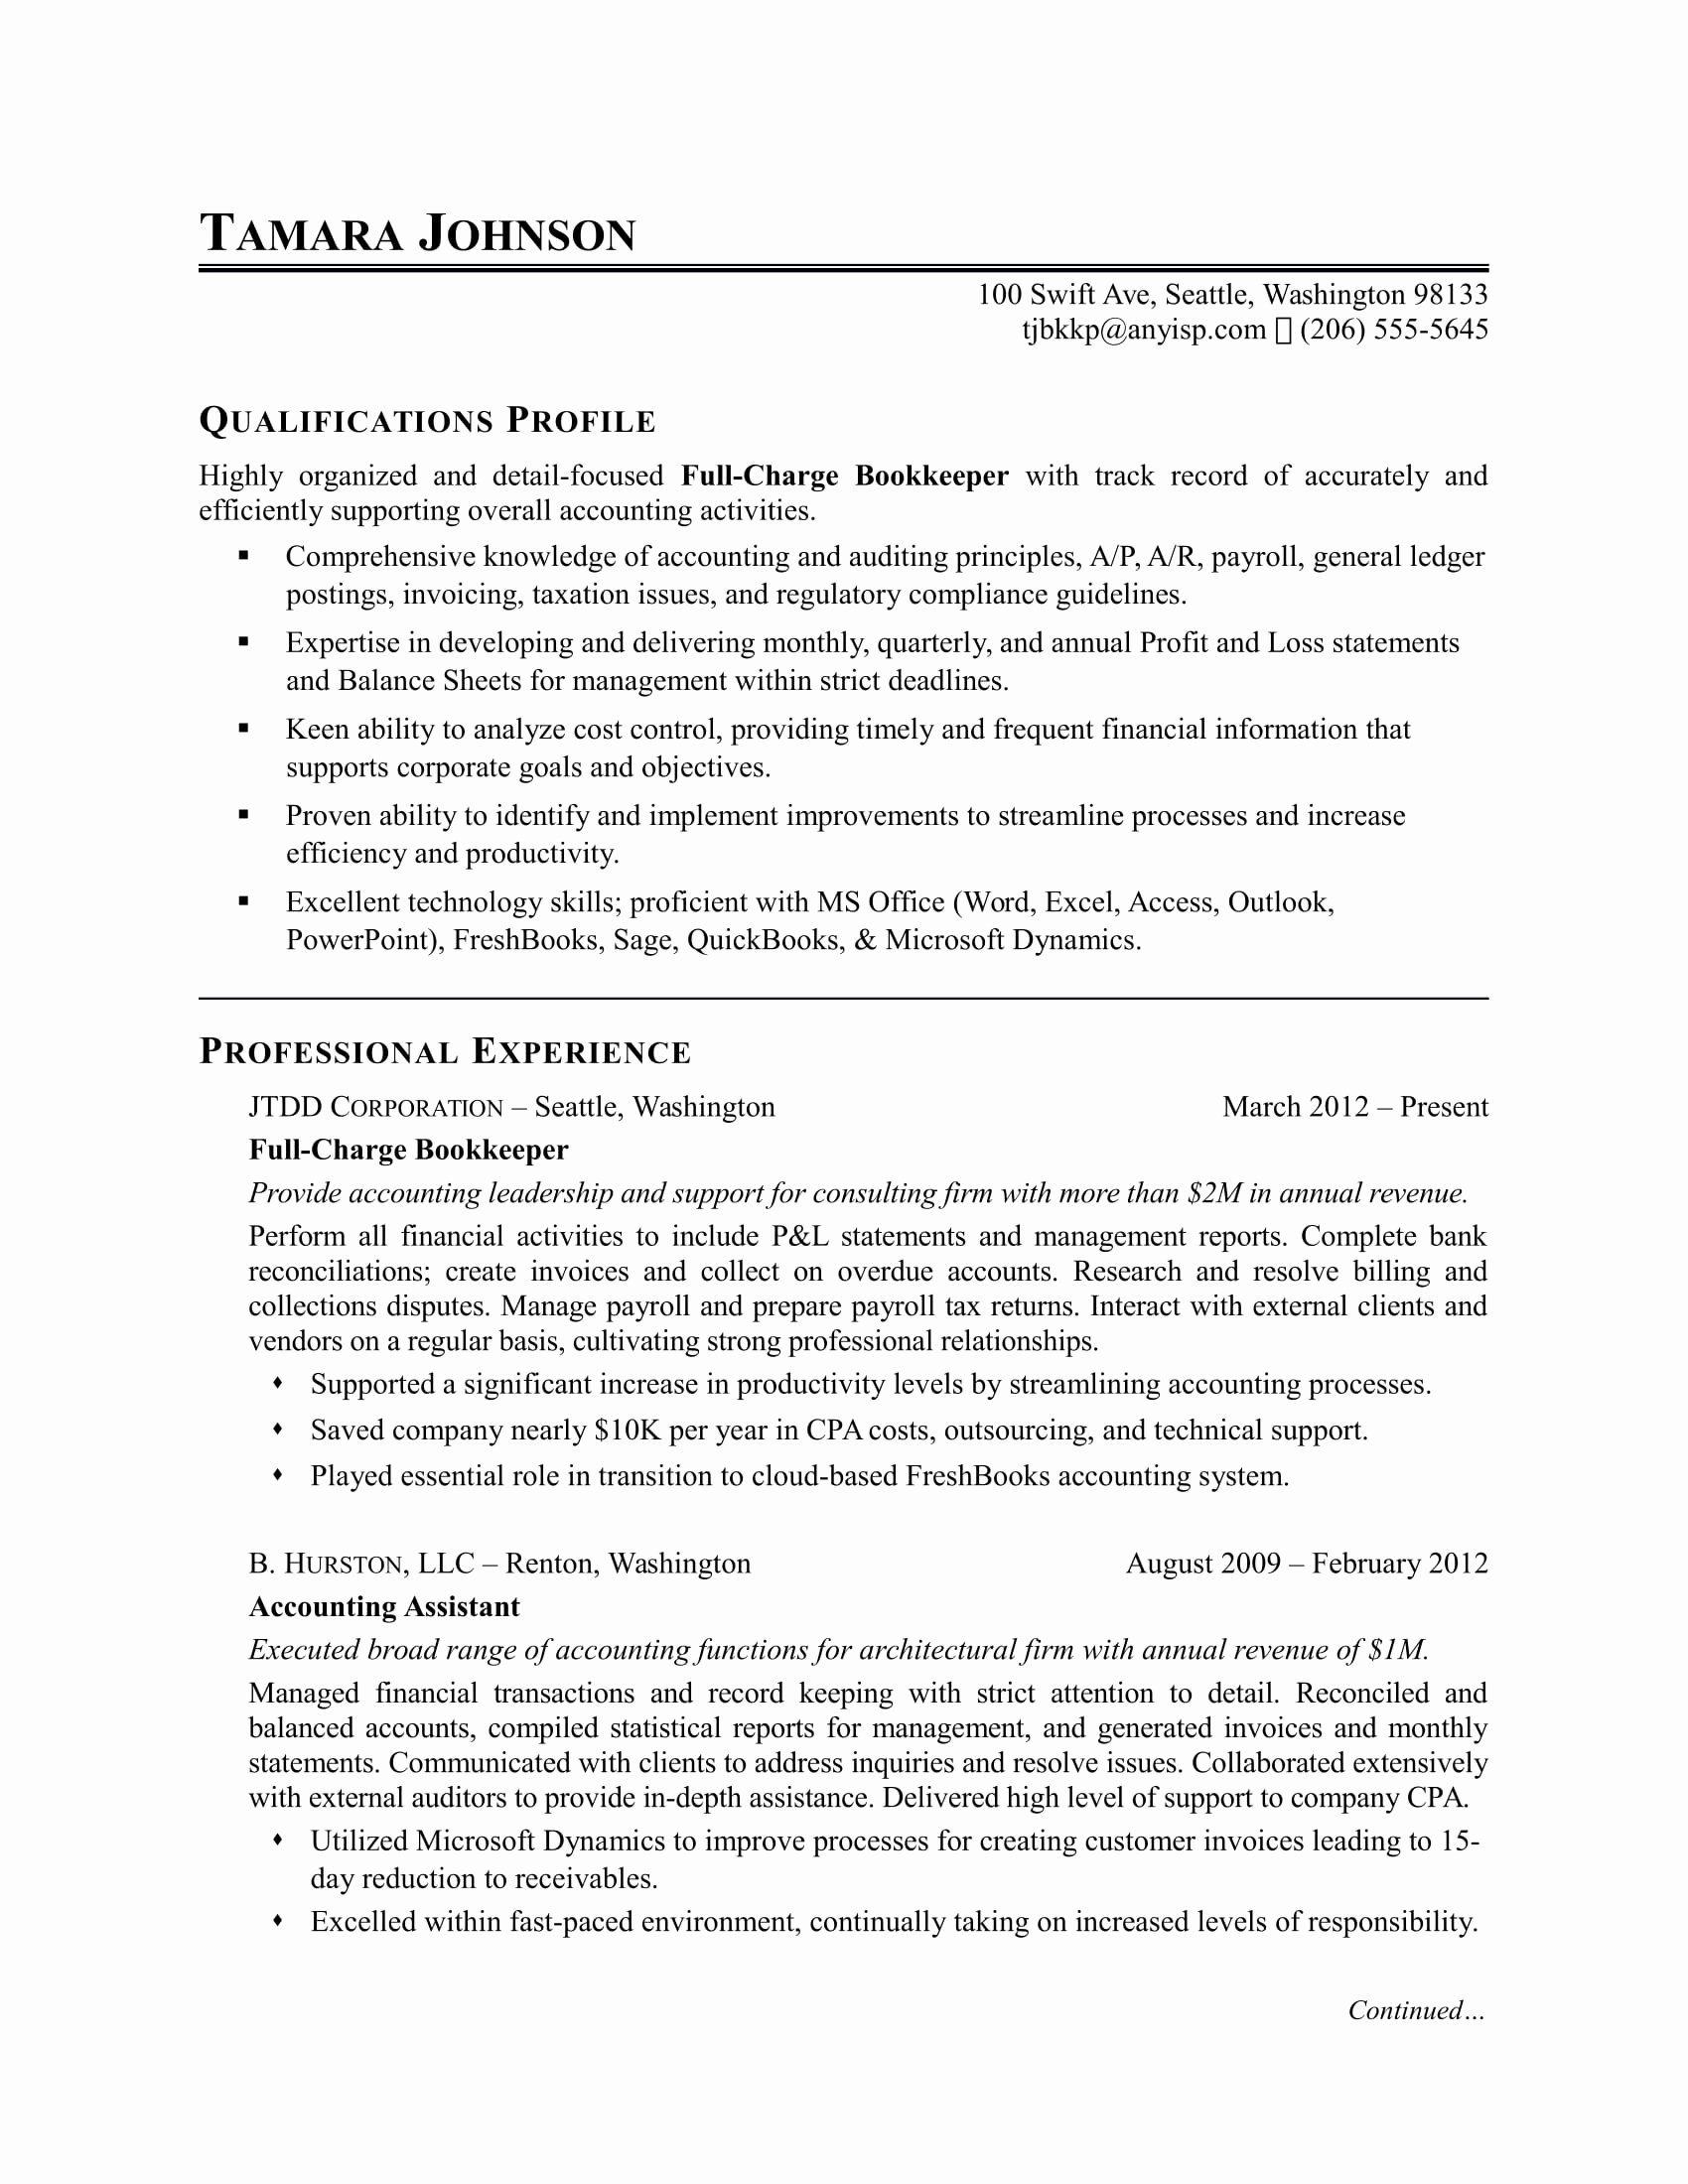 23 Excel Skills Resume Examples in 2020 Resume examples